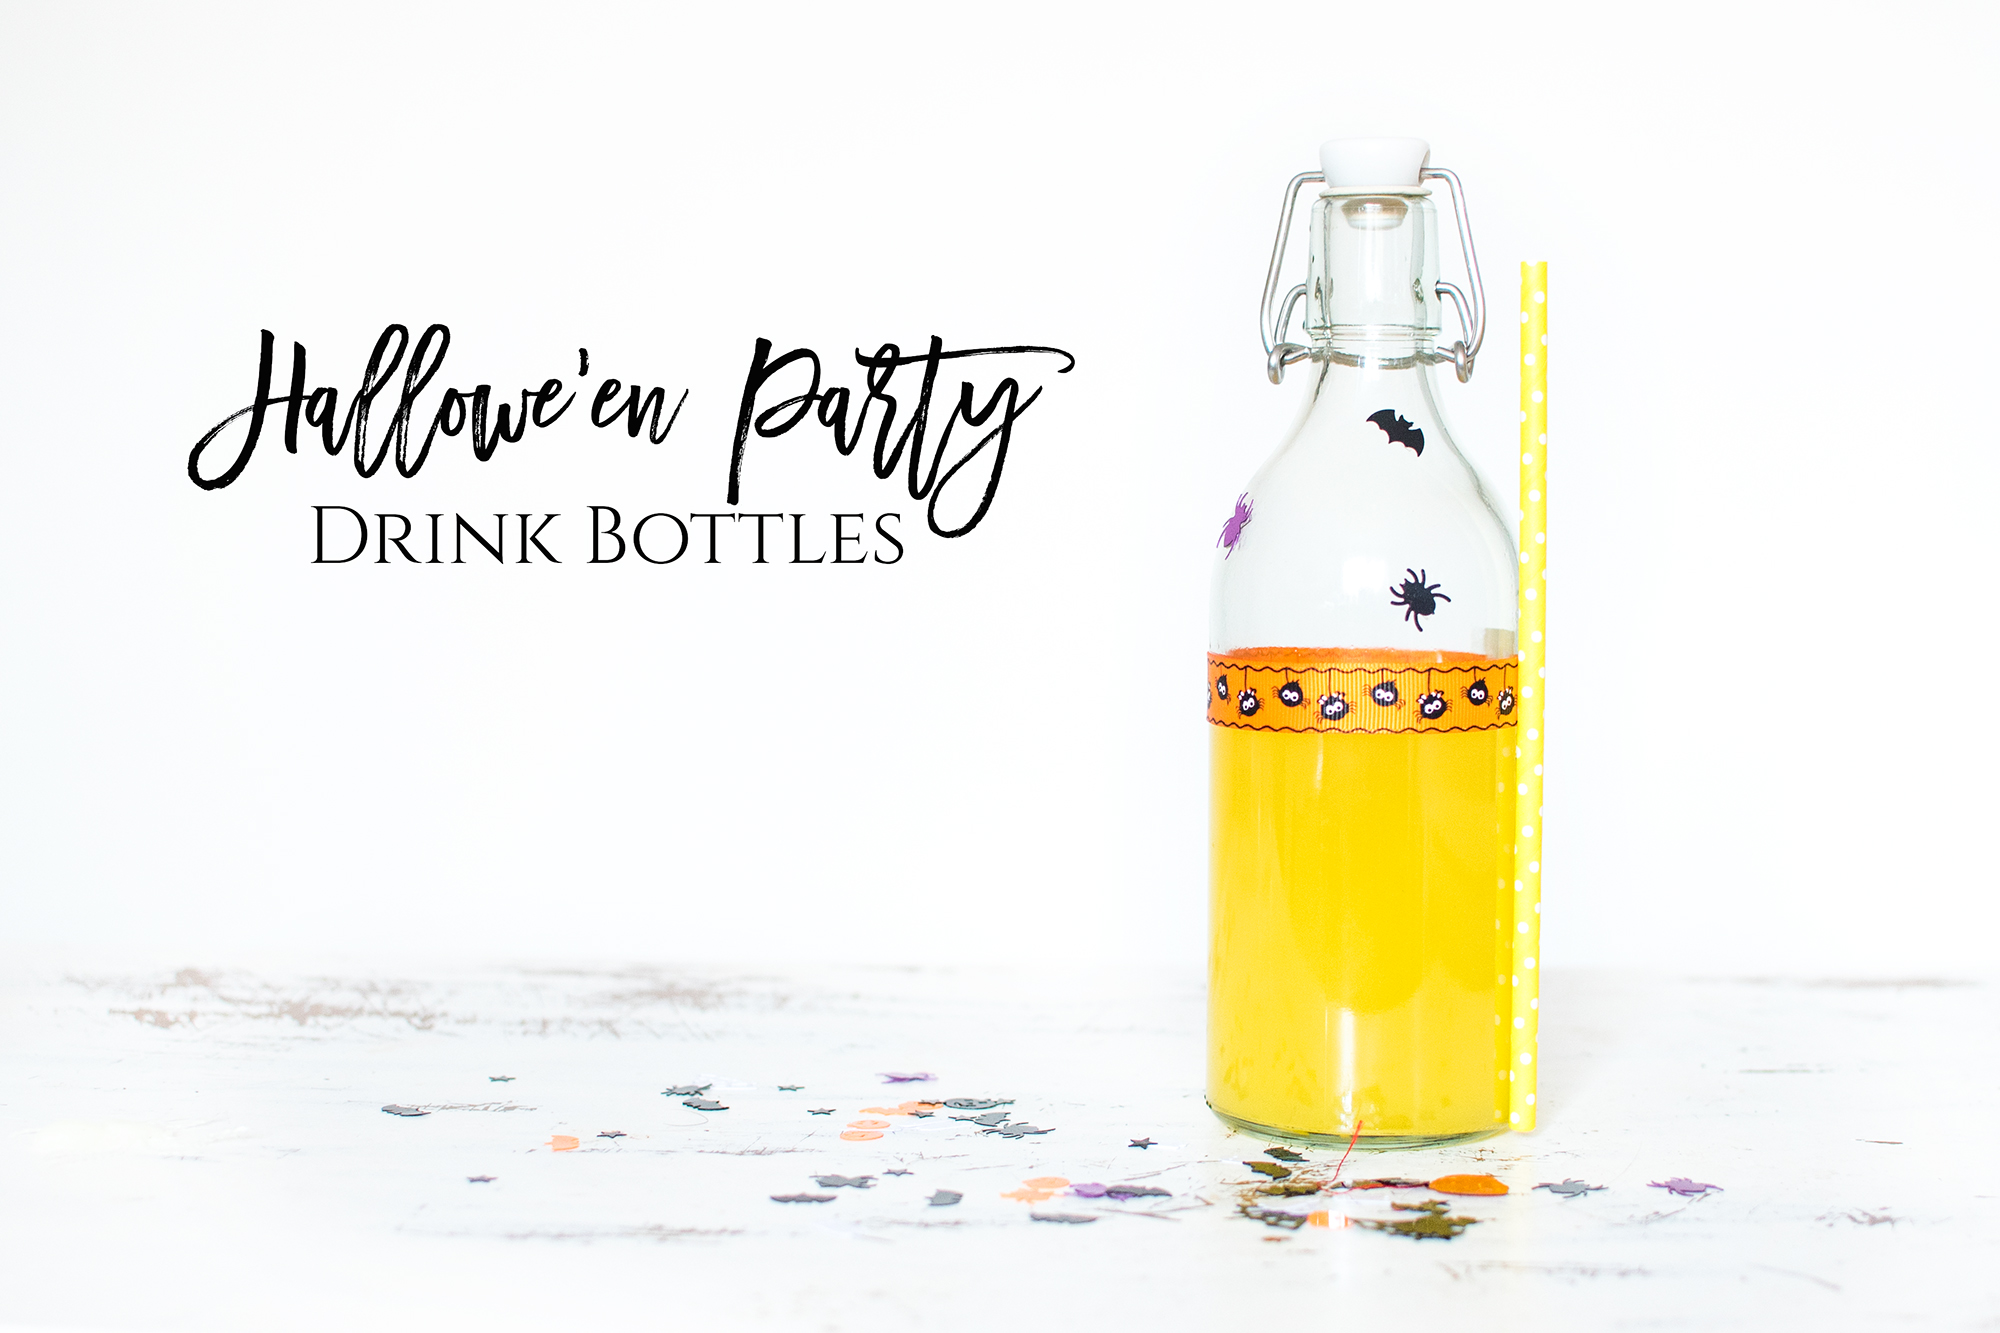 HALLOWE'EN PARTY DRINK BOTTLES